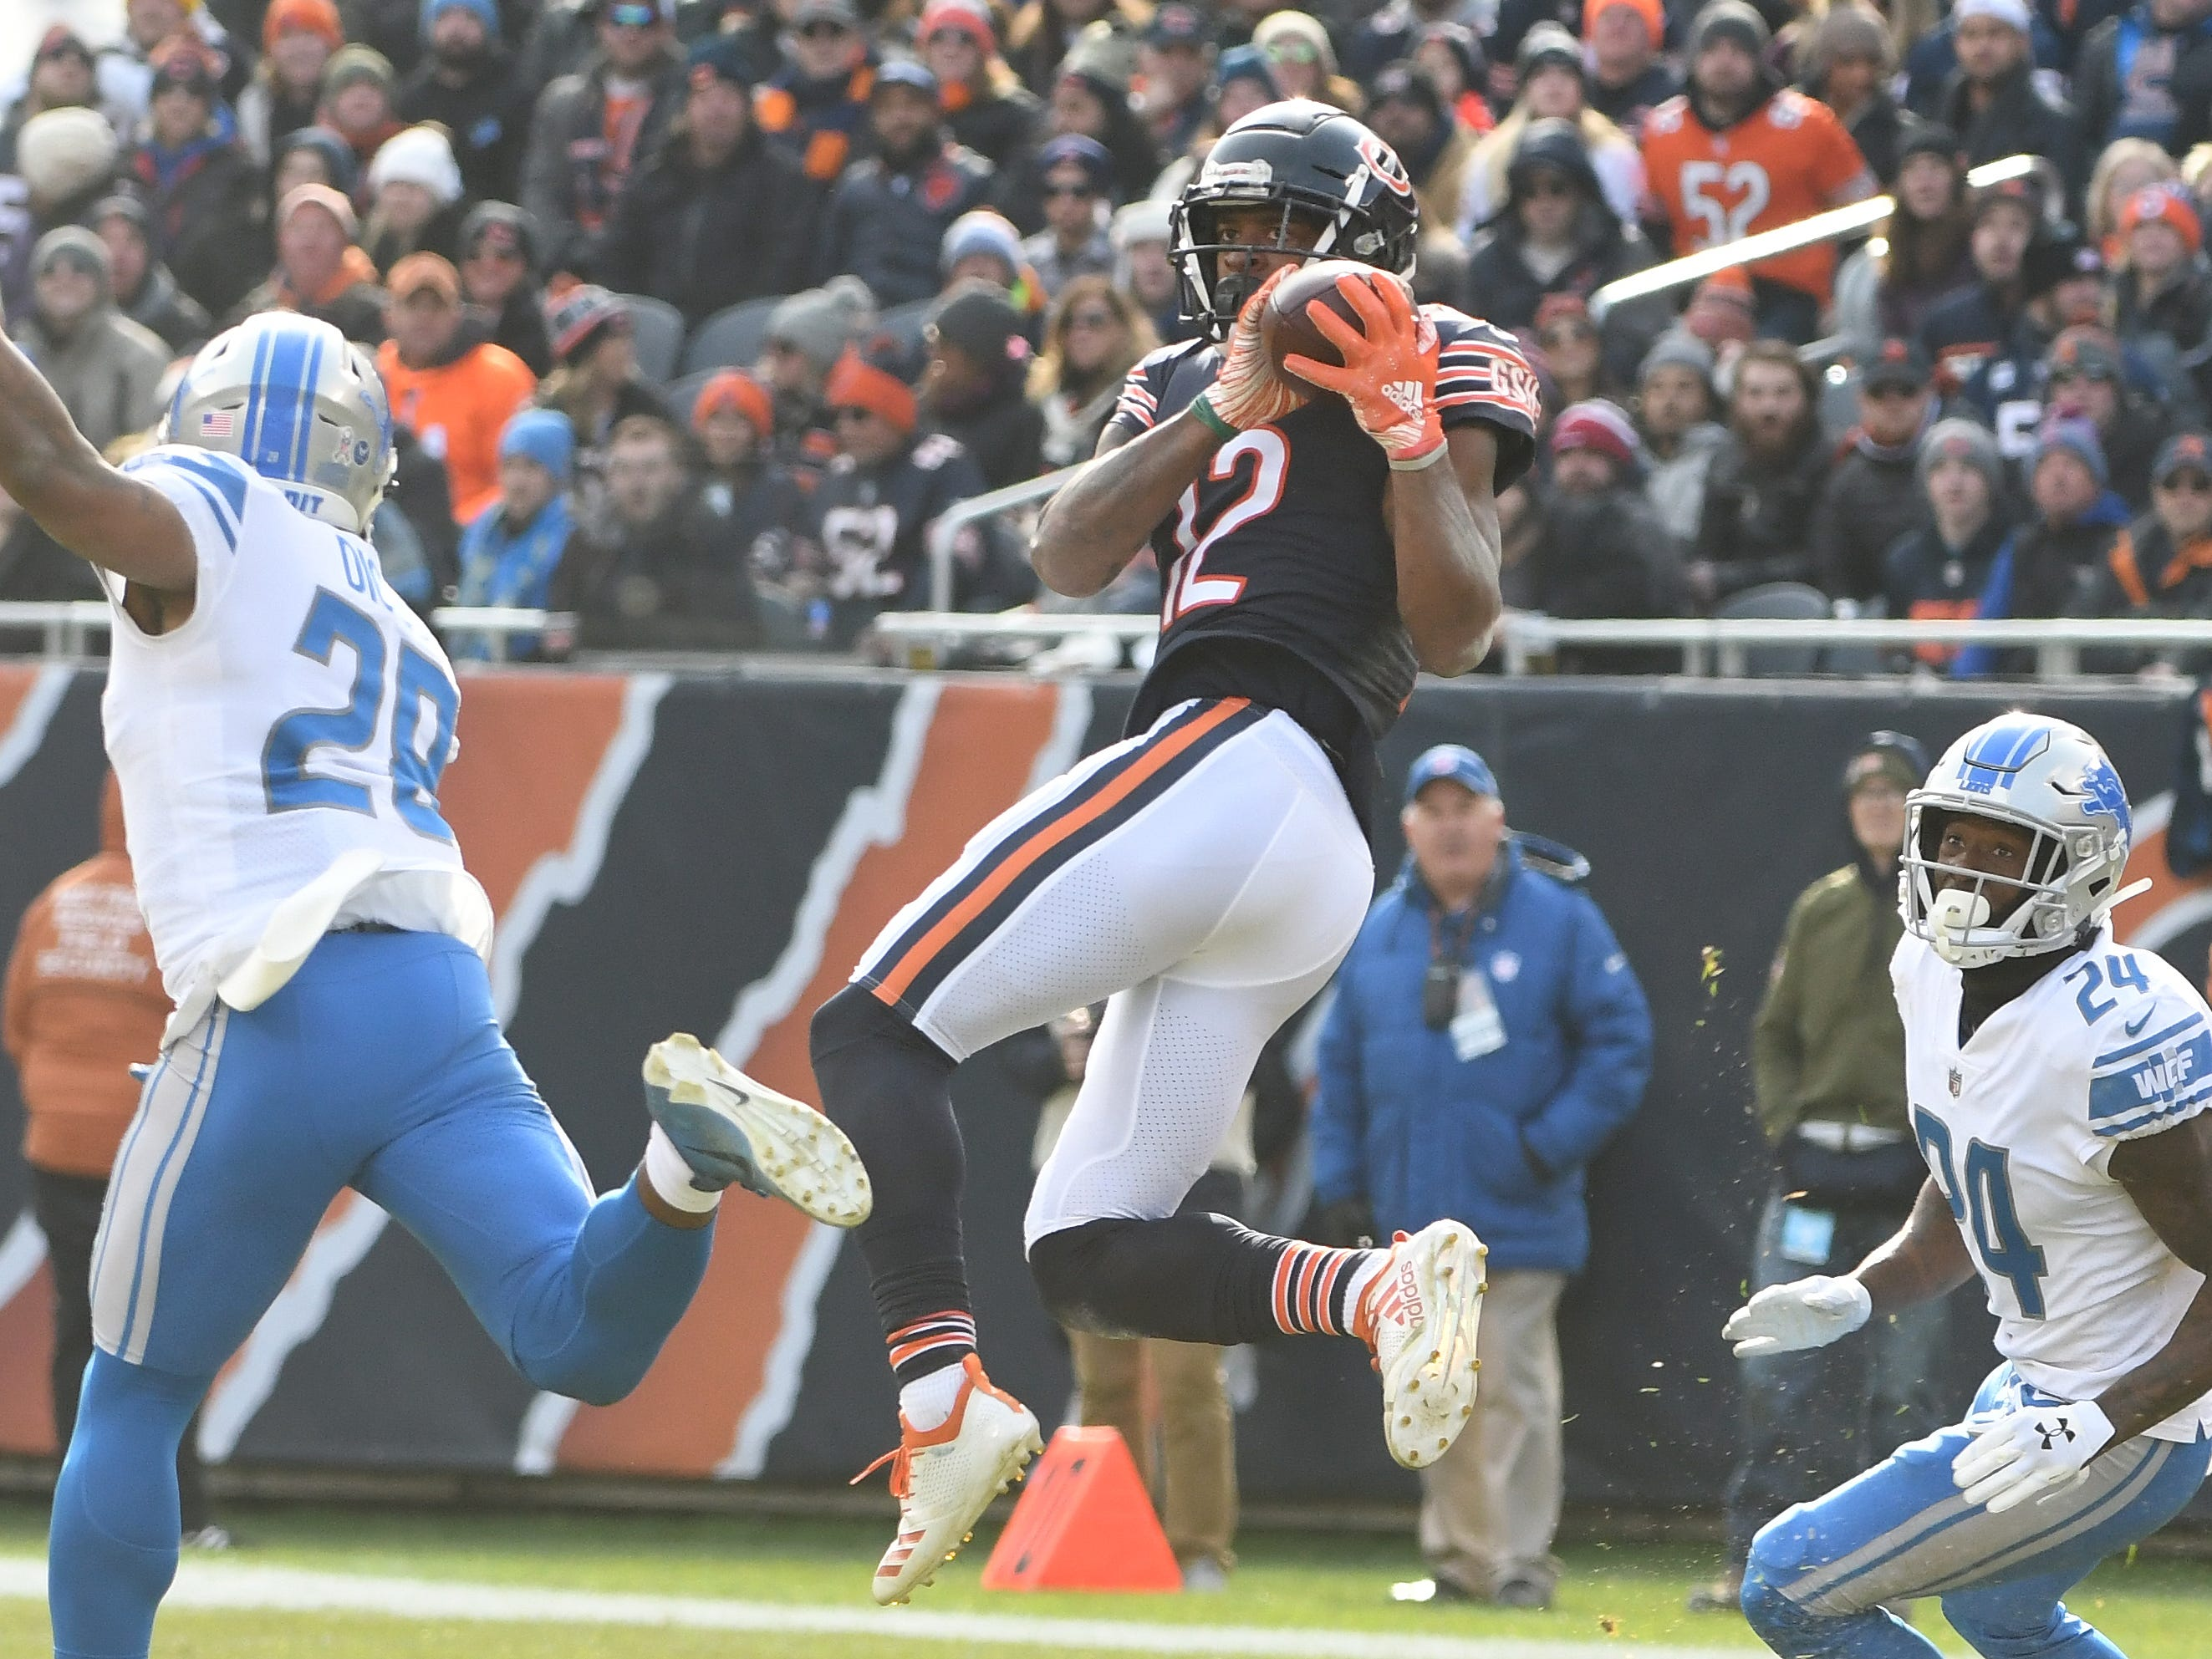 Bears' Allen Robinson II pulls in a reception in the fist quarter.